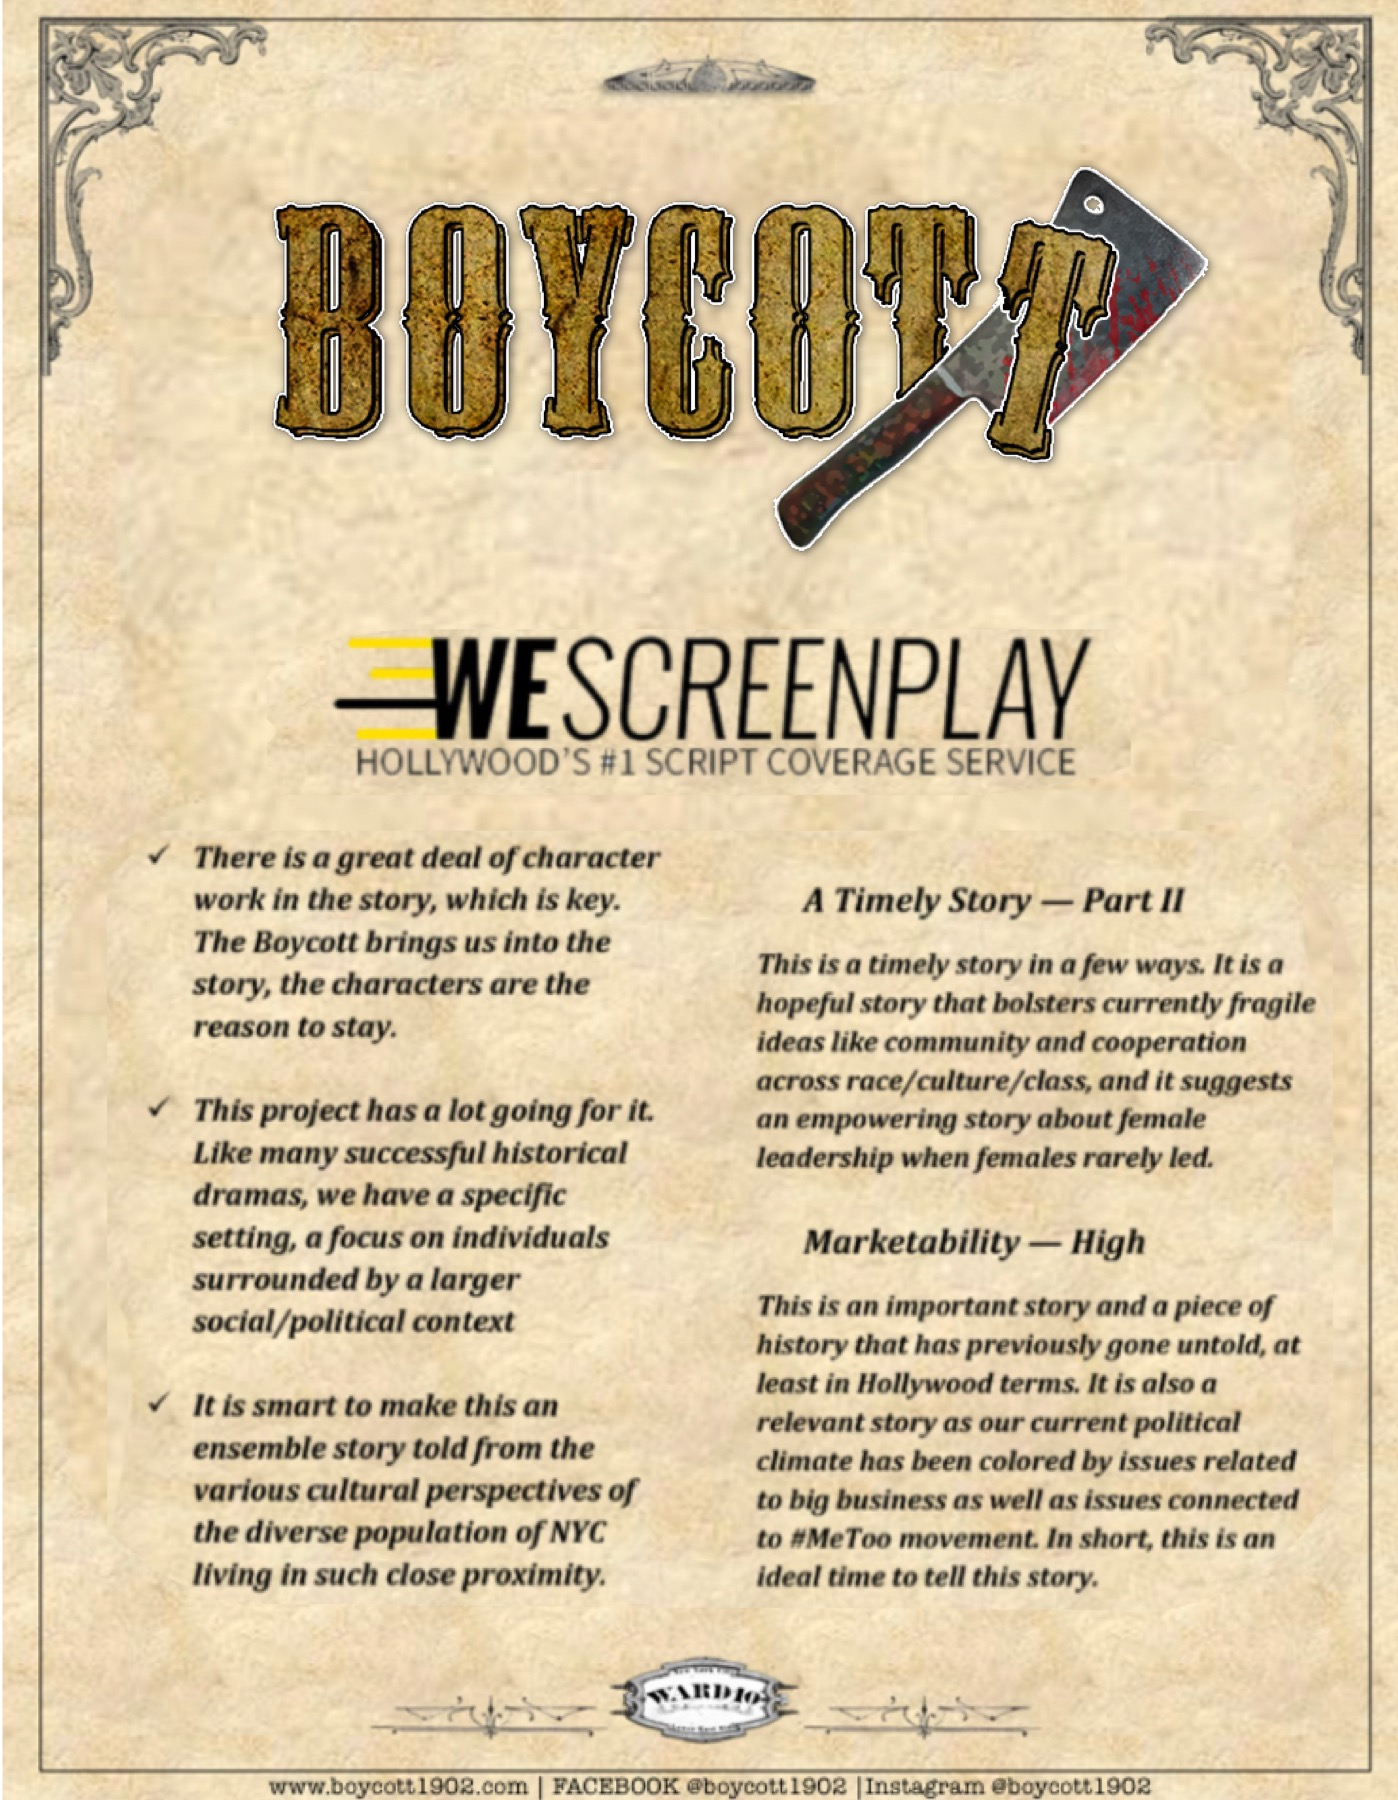 WeScreenPlay Coverage